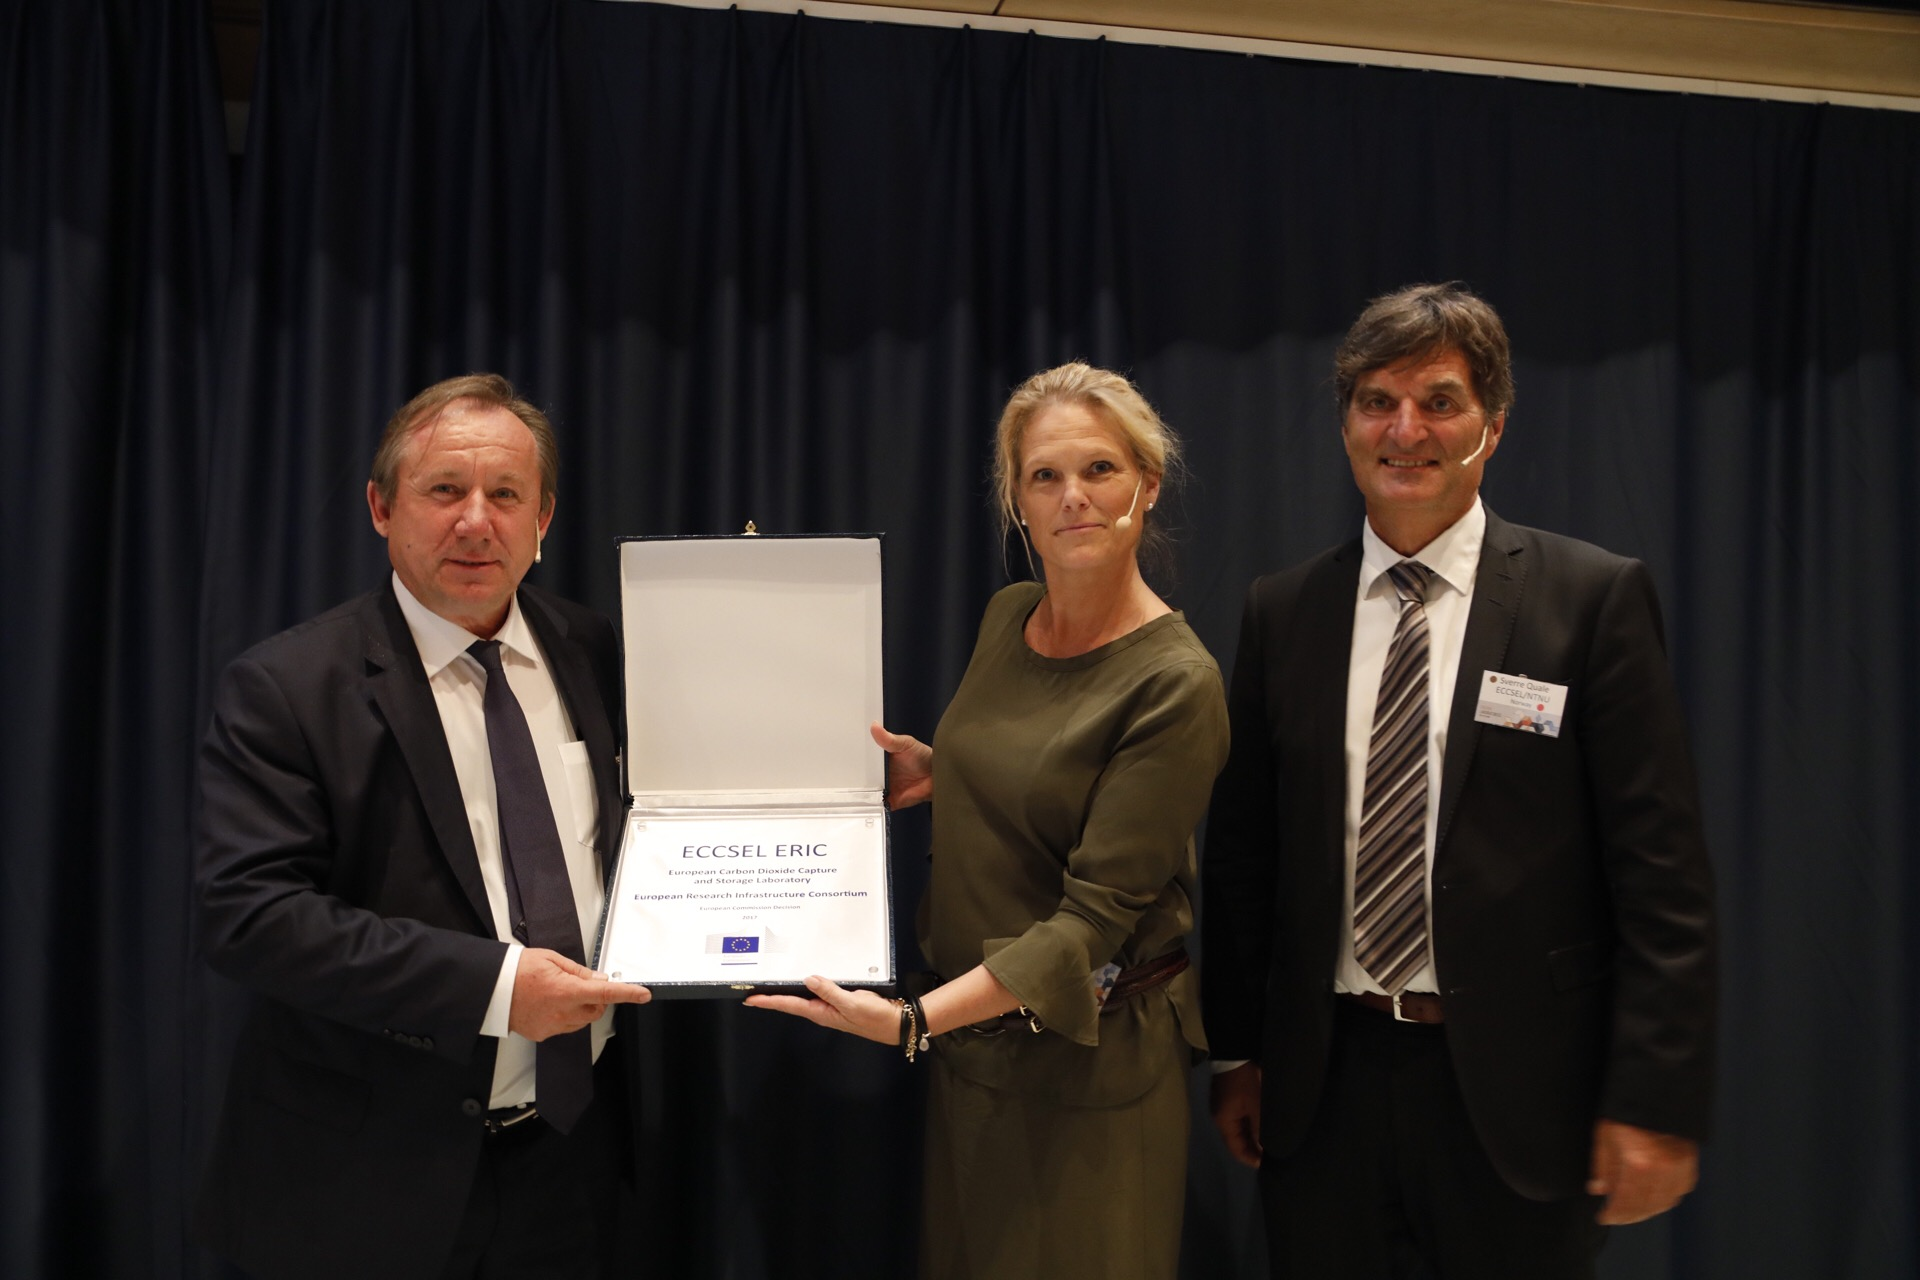 ECCSEL ERIC inauguration, Trondheim, June 12th 2017  From the left: Wolfgang Burtscher, Deputy Director-General of the European Commission's Directorate-General for Research & Innovation, Ingvil Smines Tybring-Gjedde, State Secretary in the Ministry of Petroleum and Energy, Sverre Quale, ECCSEL ERIC director.  Photo: Thor Nielsen/NTNU